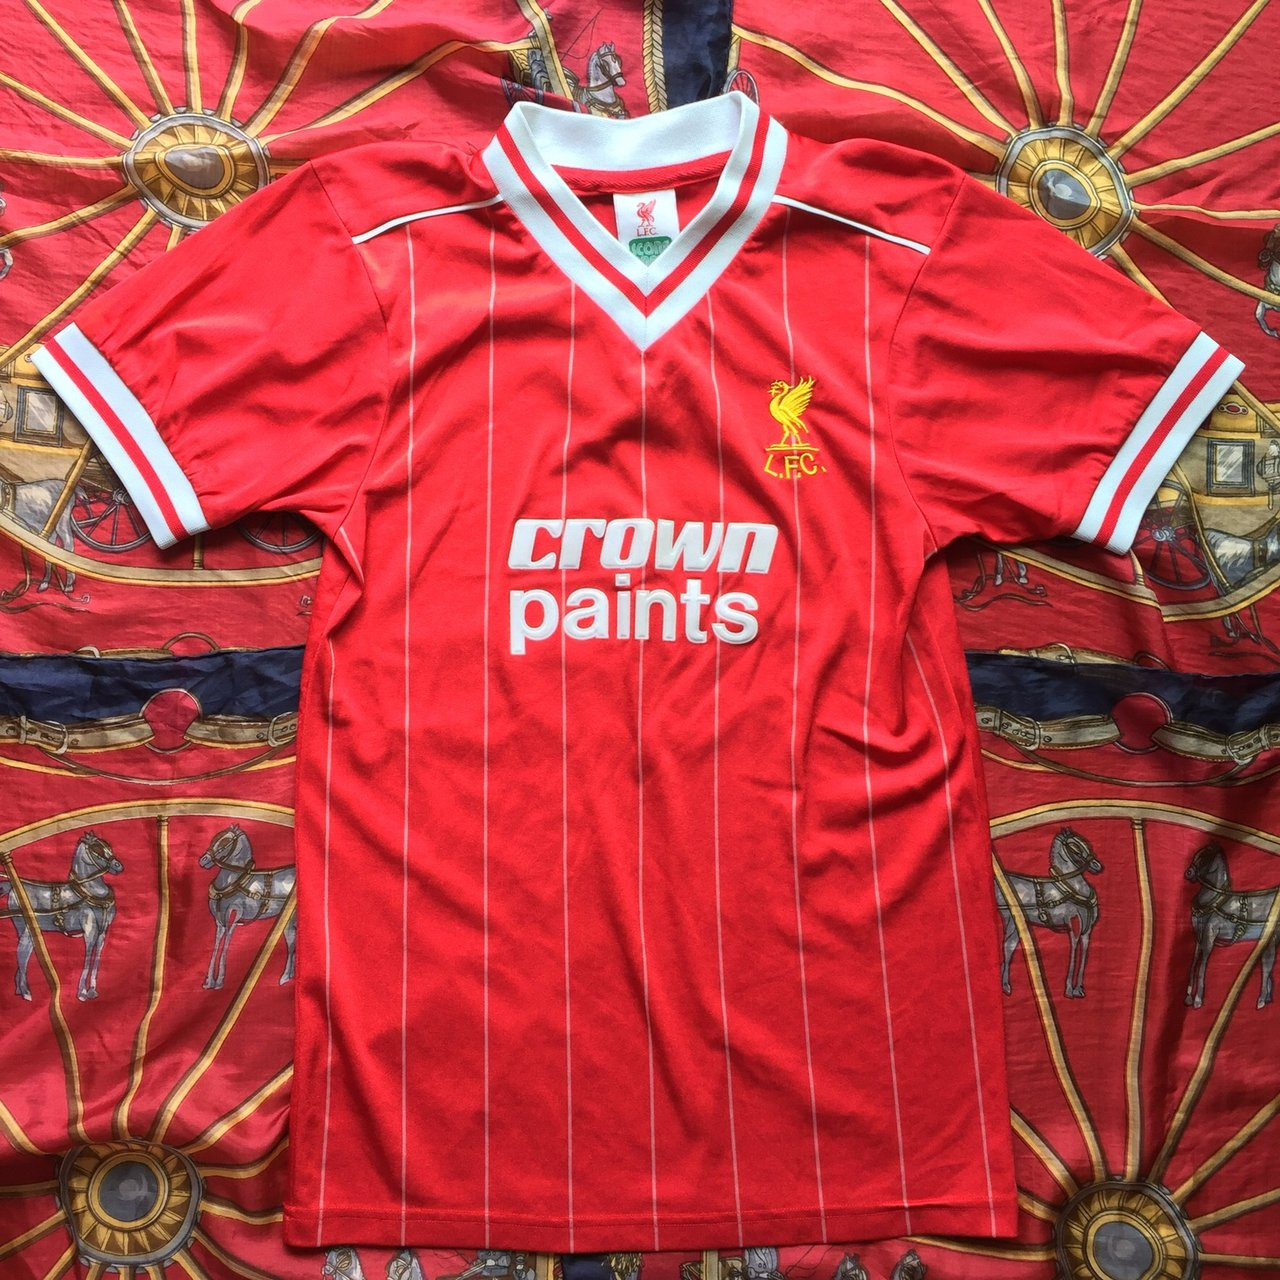 6b29a8be7ae Vintage Replica Liverpool Shirts – EDGE Engineering and Consulting ...